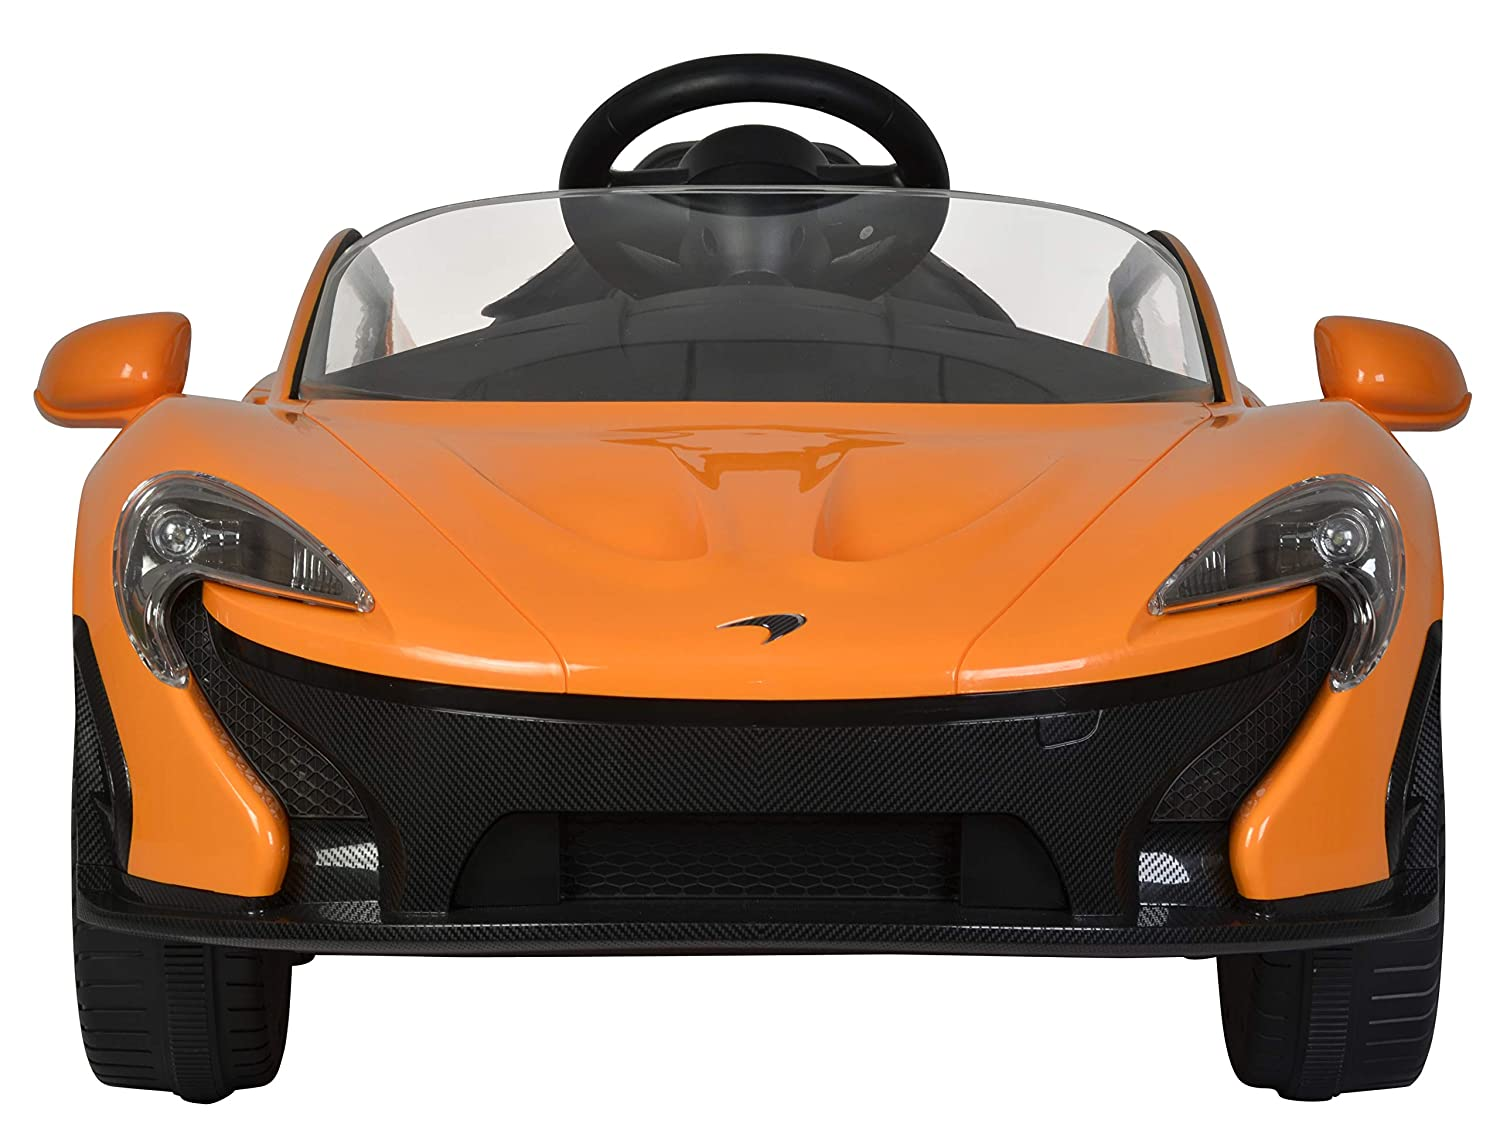 Ricco McLaren P1 Licenced 12V 7A Battery Powered Kids Electric Ride On Toy Car Orange Model: 672R